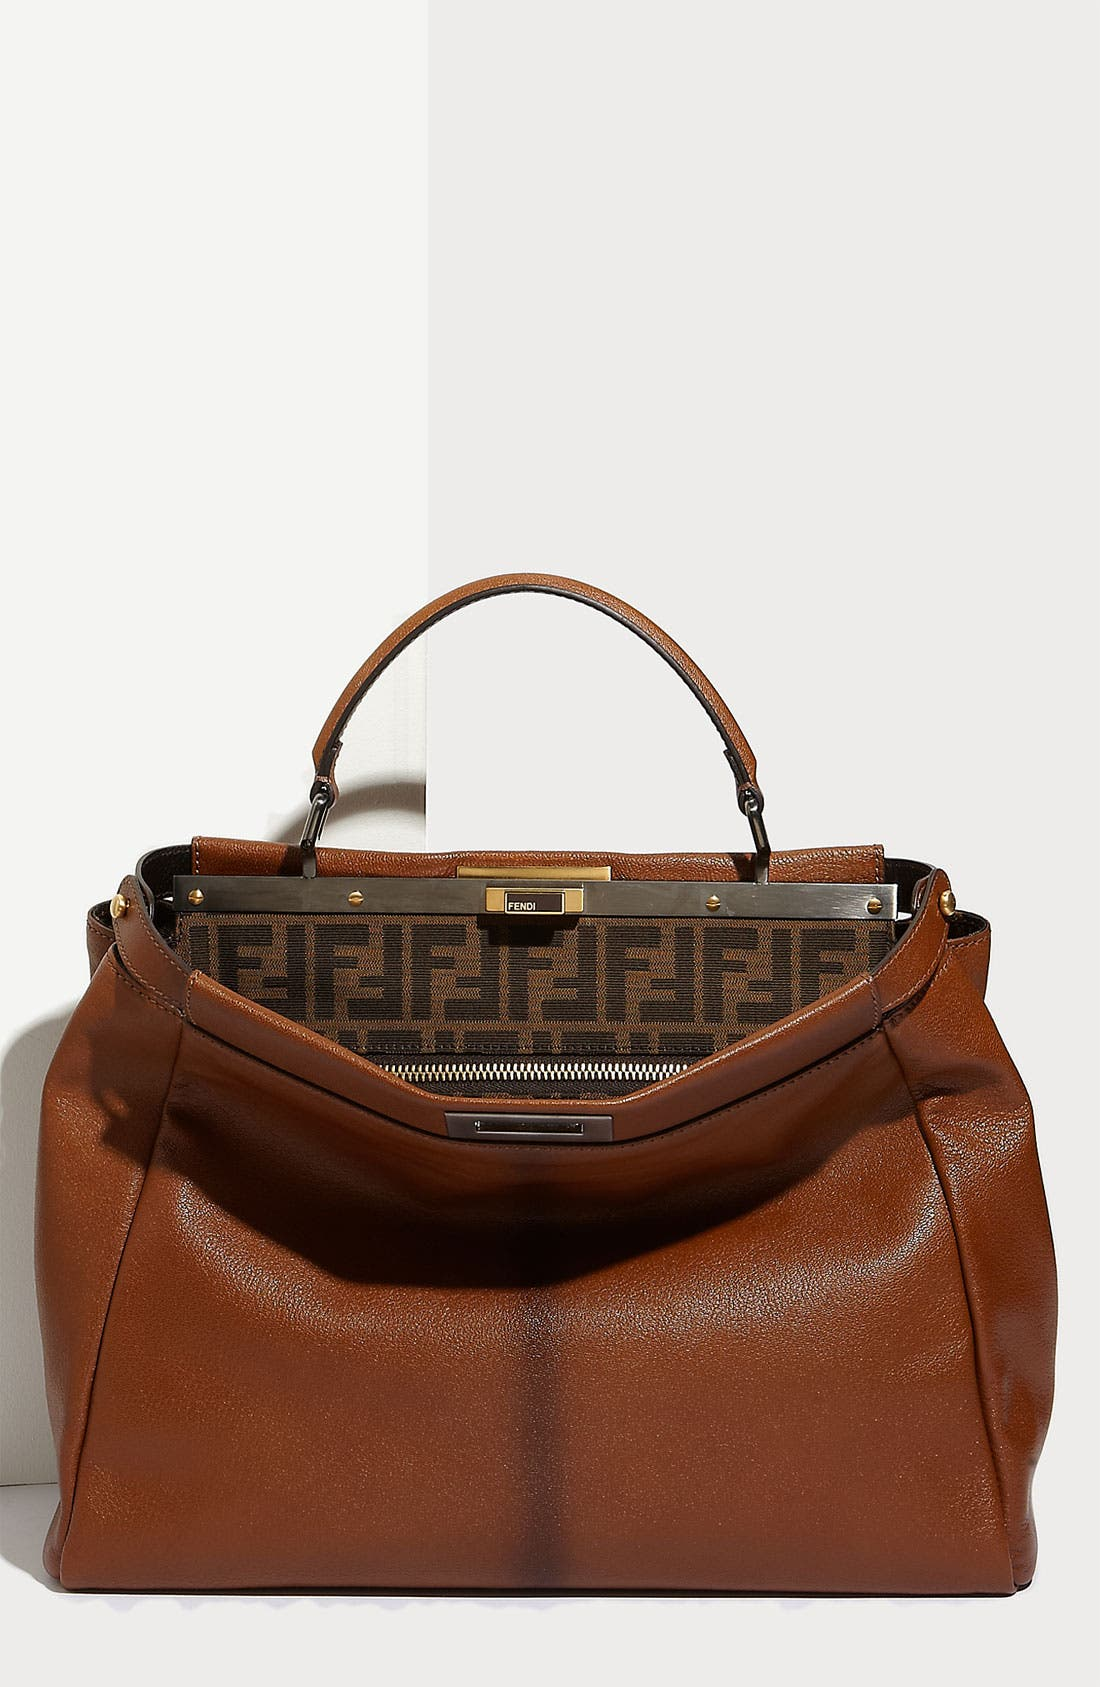 Alternate Image 1 Selected - Fendi 'Peekaboo - Large' Goatskin Leather Satchel